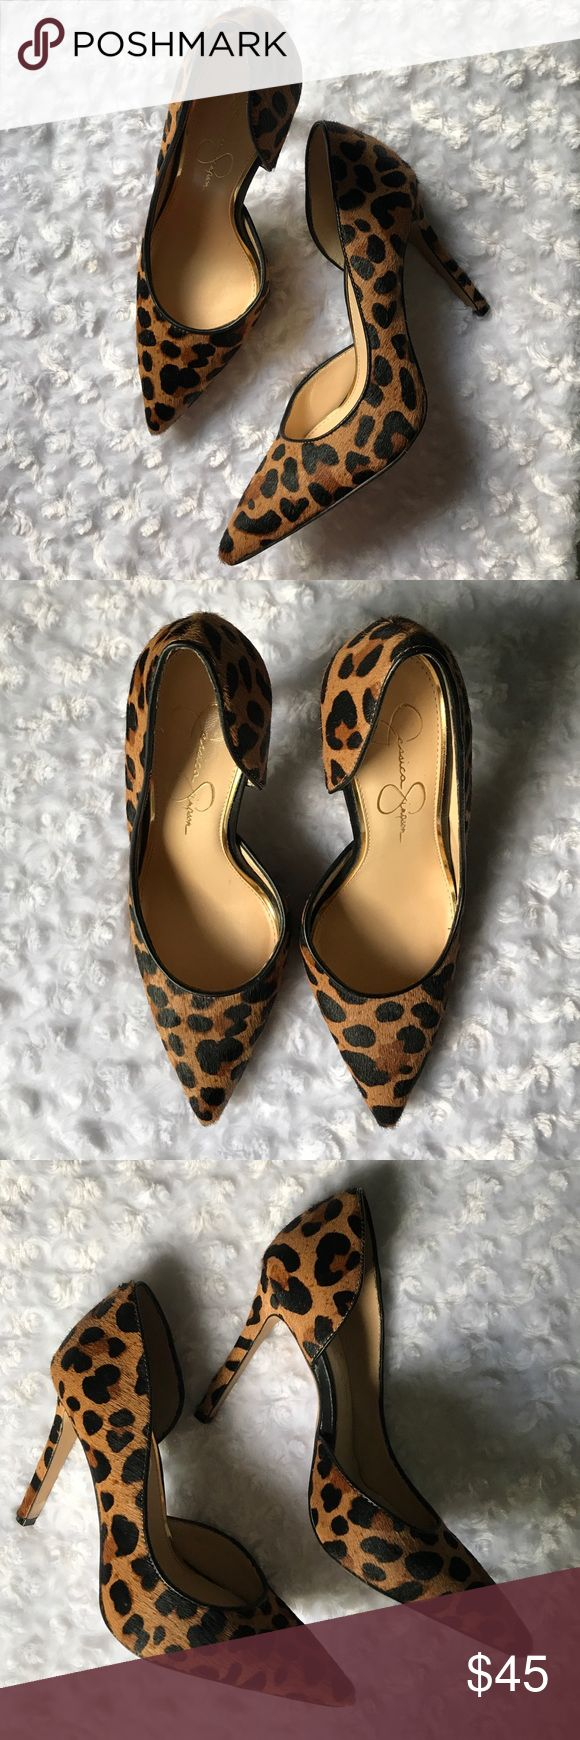 "JESSICA SIMPSON LEOPARD HEELS PUMPS STILETTOS Real cow hair fur. True to size fit. A Fantastic Staple shoe color. Sophisticated and sexy. 4"" heel. Faux leather trim around inner edges. This won't disappoint! Jessica Simpson Shoes"